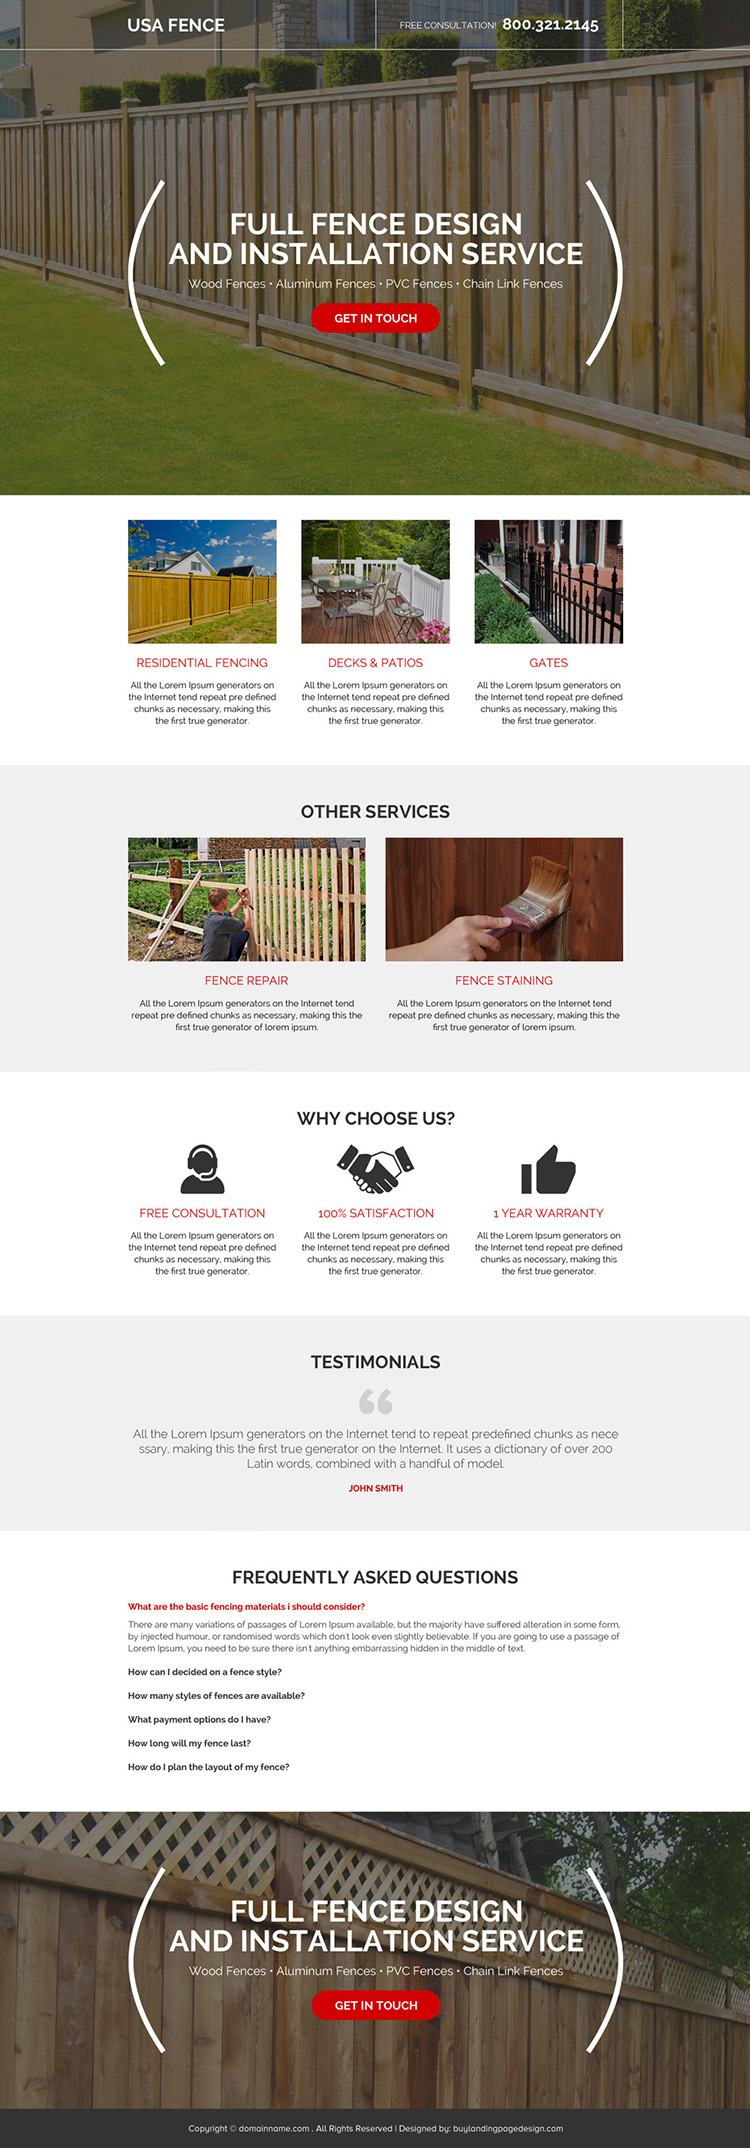 fencing design and installation responsive landing page design